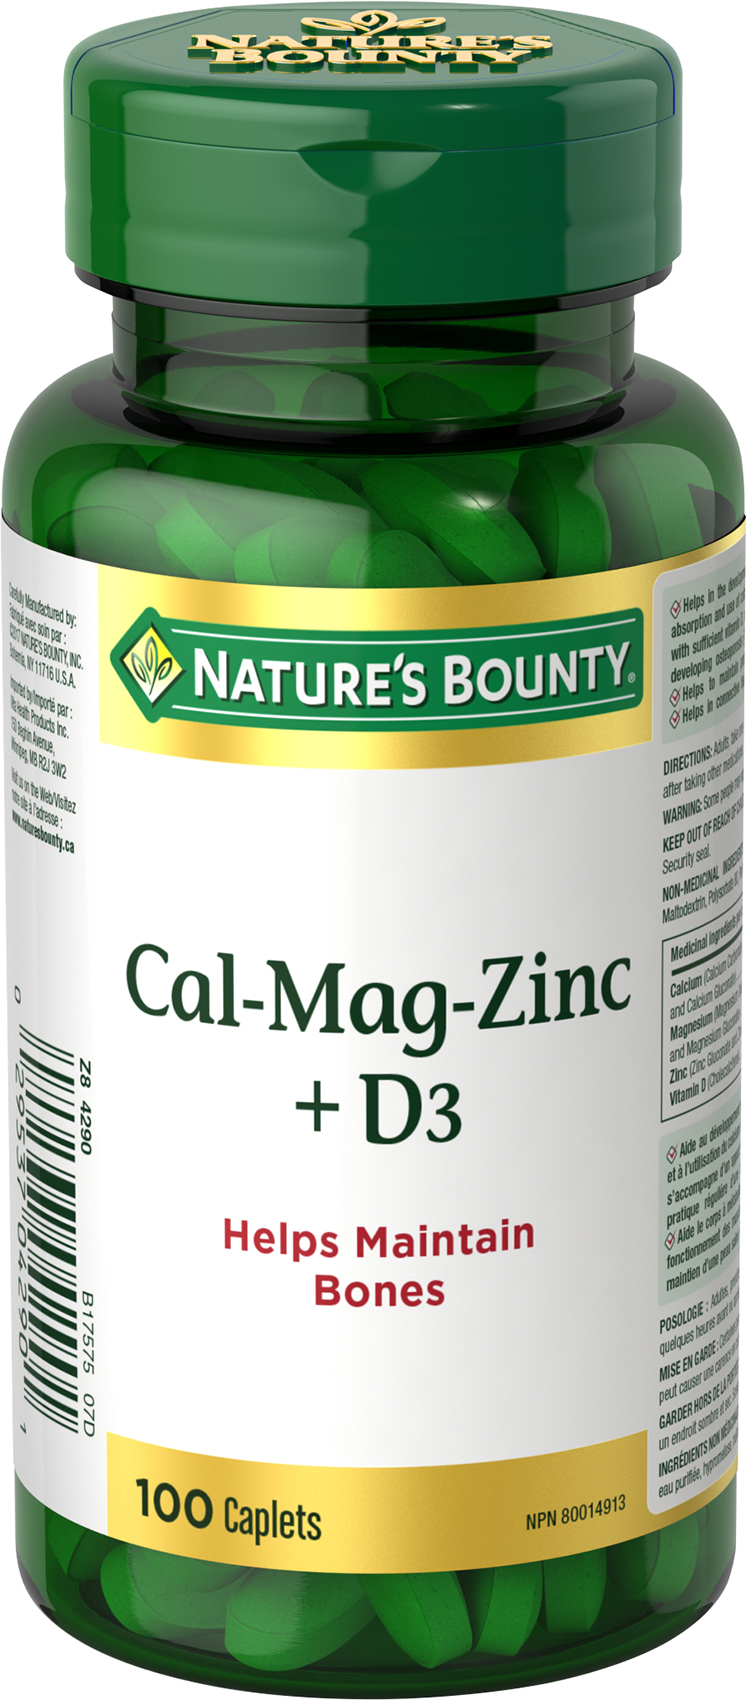 Calcium, Magnesium, Zinc with Vitamin D3